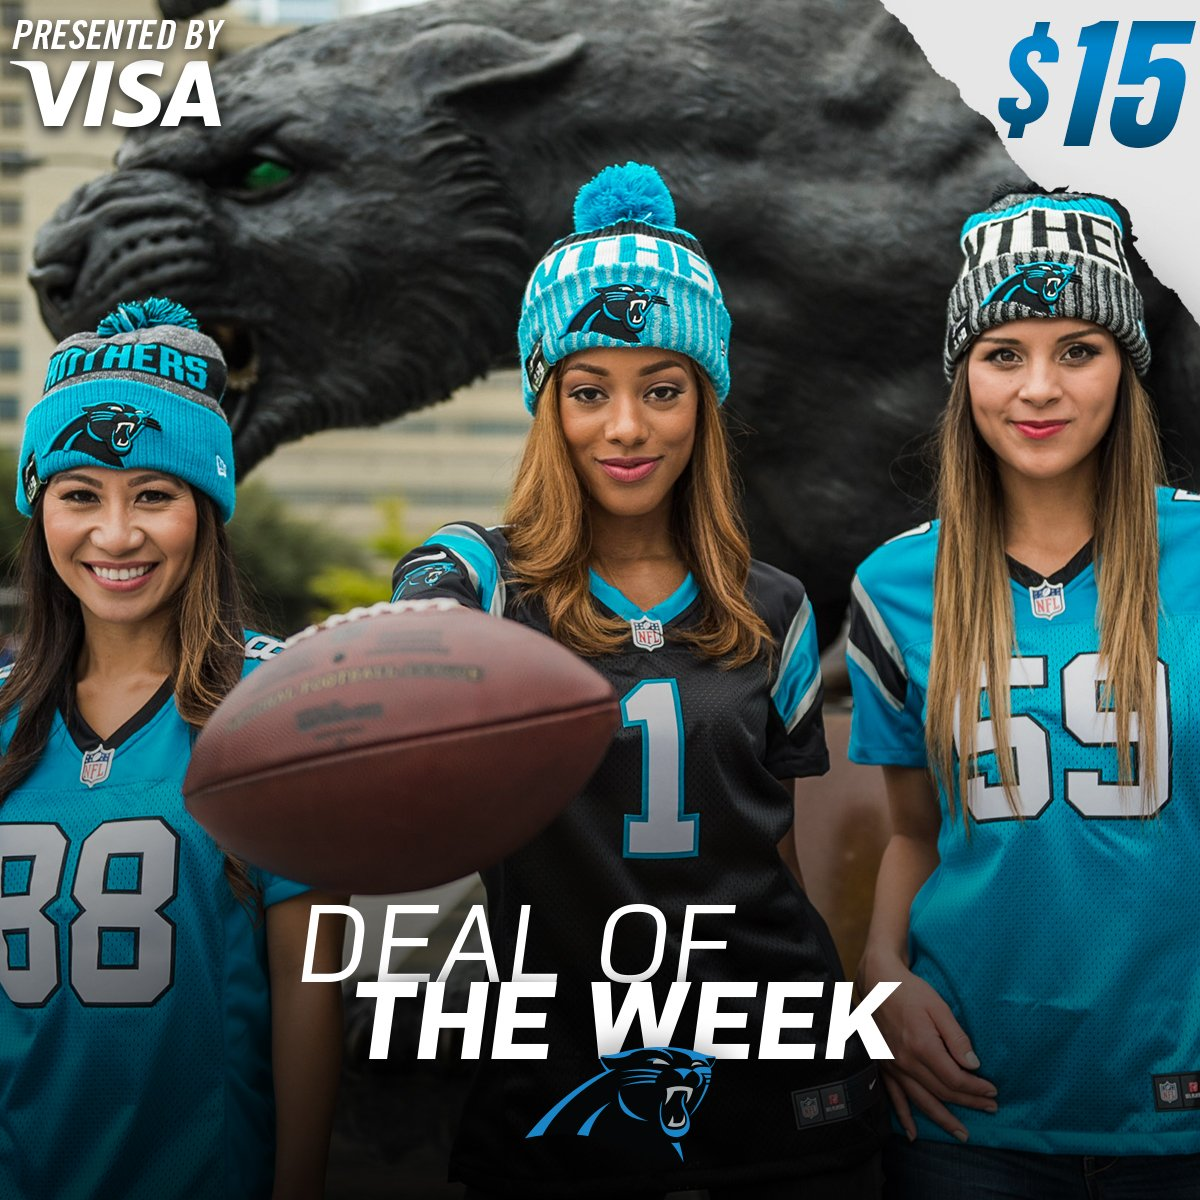 �� Deal of the Week! ��   https://t.co/dENXaoA9nR  However you pay, choose @Visa https://t.co/3s3GpjmPvA